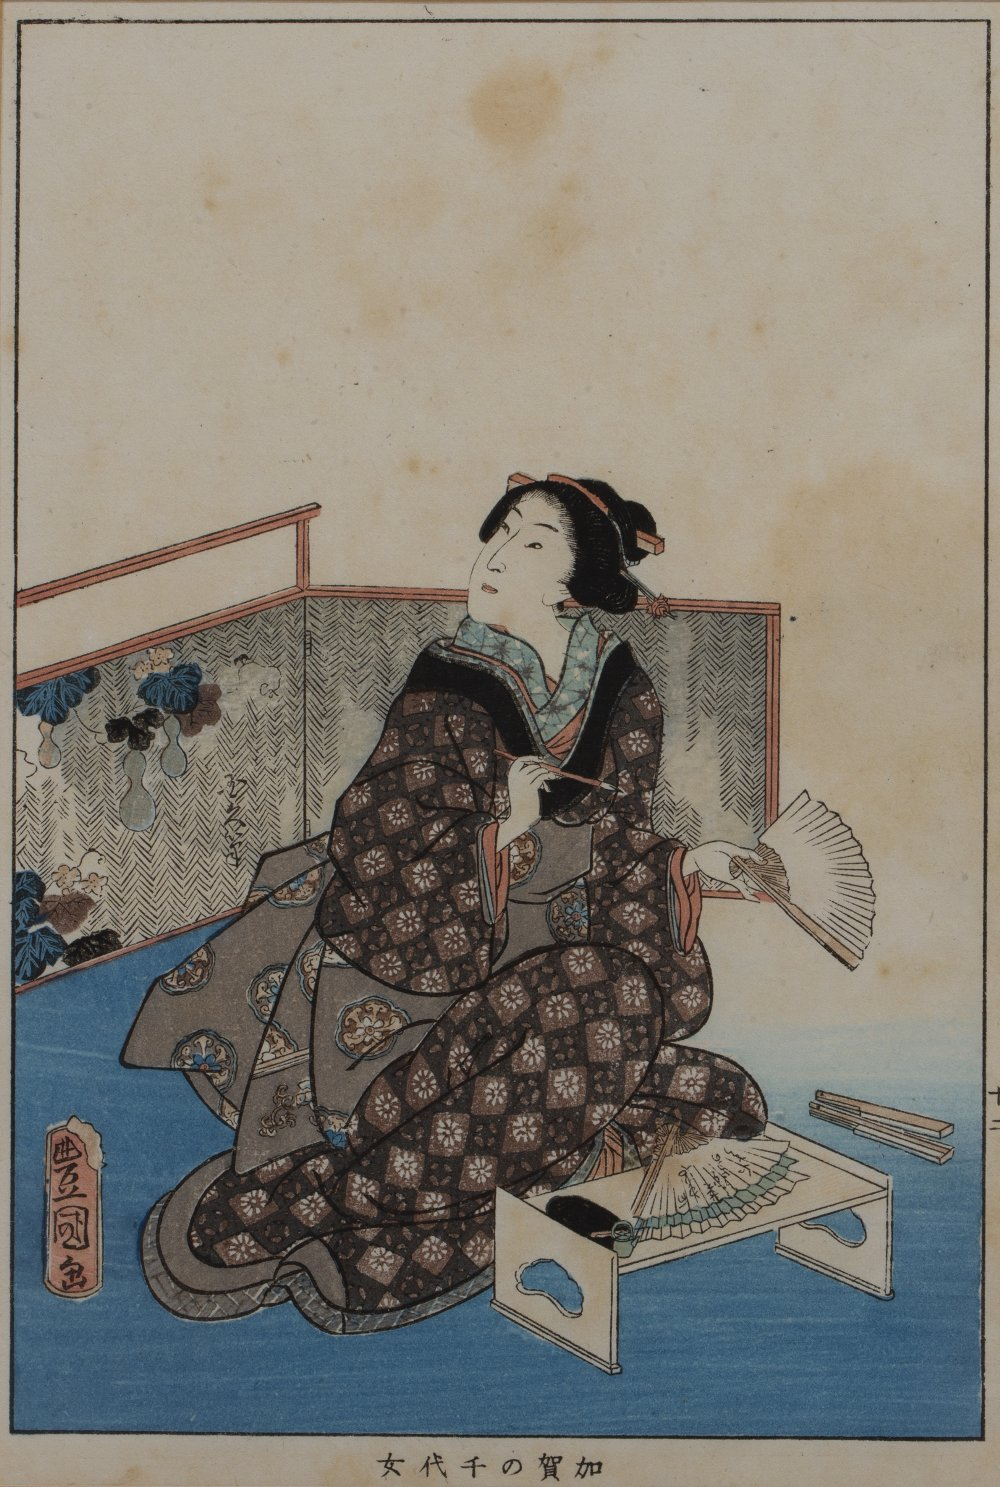 Two Japanese woodblock prints one with samurai in foreground, 35cm x 22cm and one other of a - Image 2 of 6